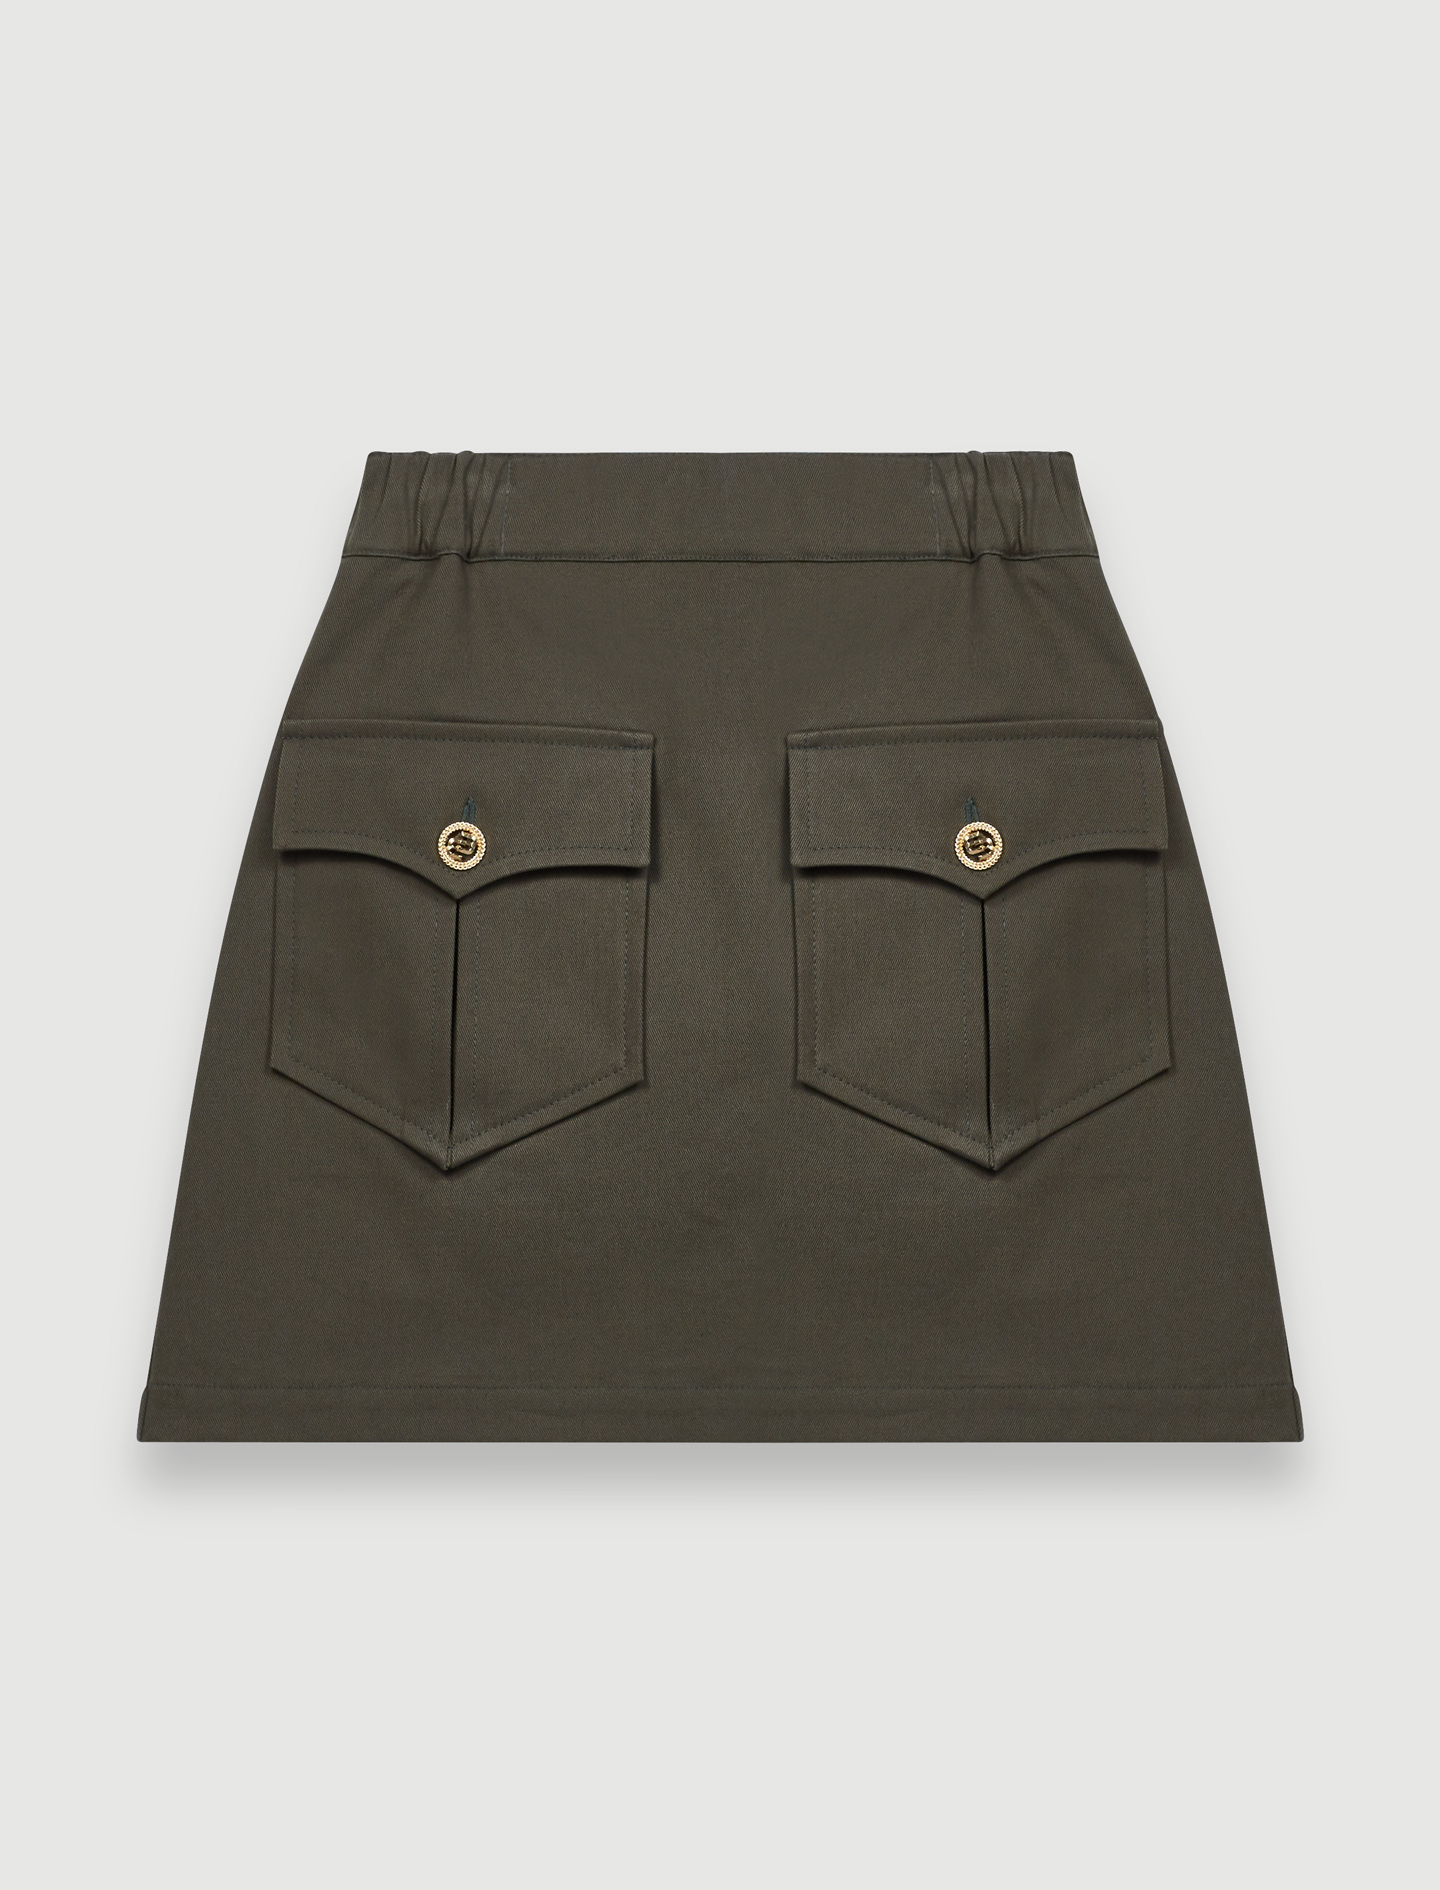 Khaki cotton skirt with pockets - Green